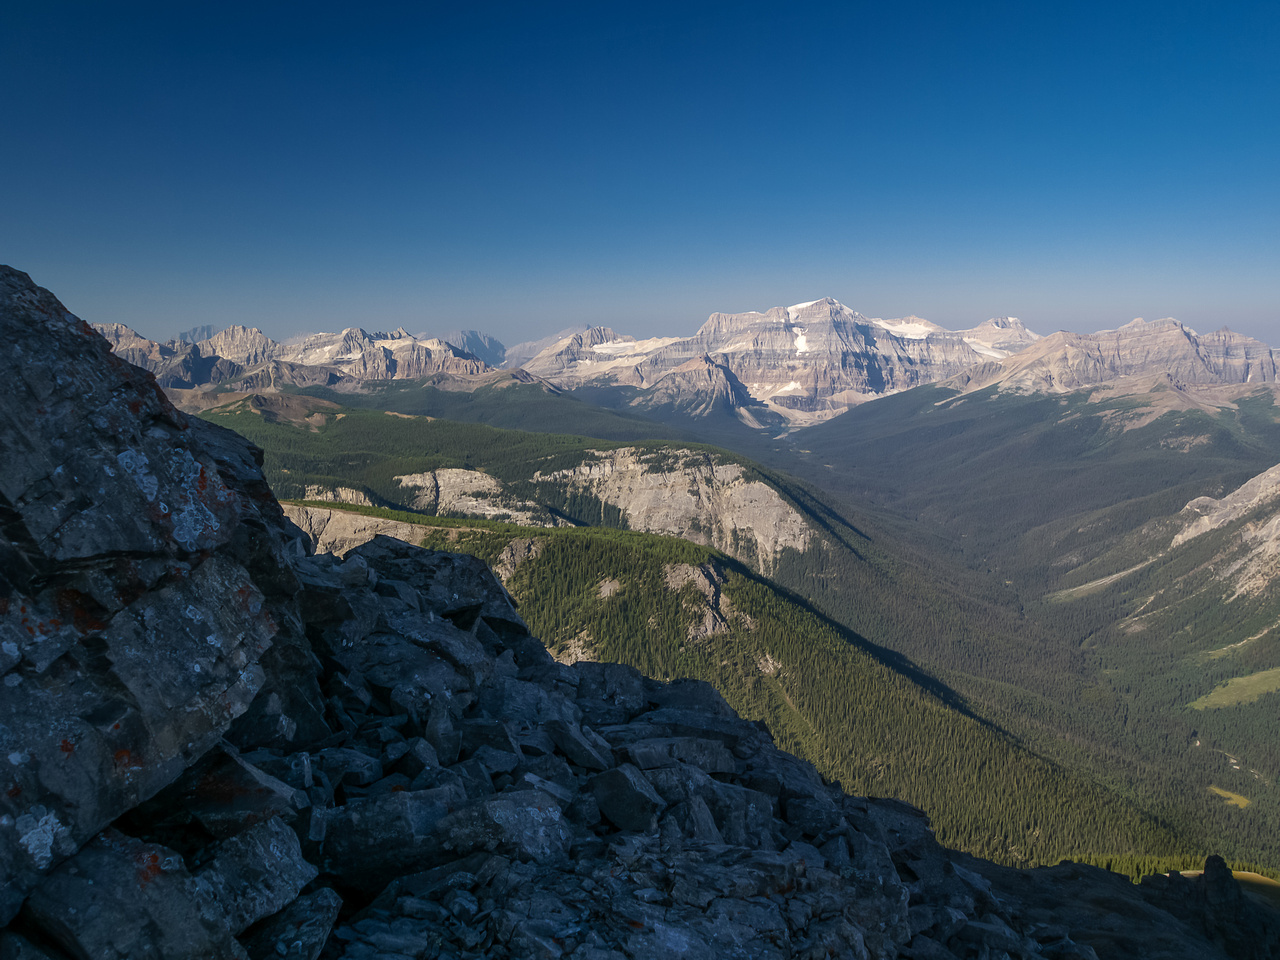 Views towards Mount Ball and Shadow Lake from under the flake.